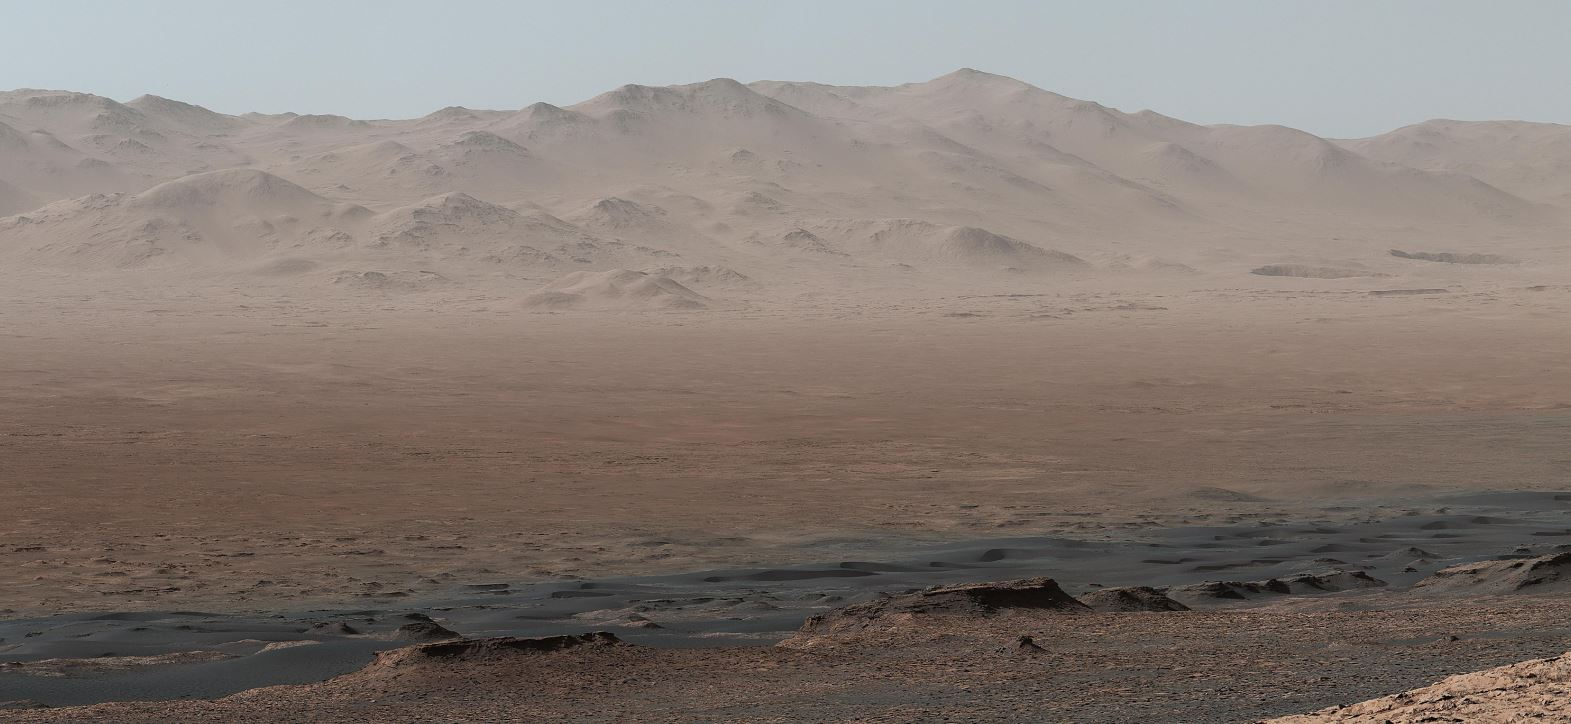 La surface de Mars photographiée par Curiosity.